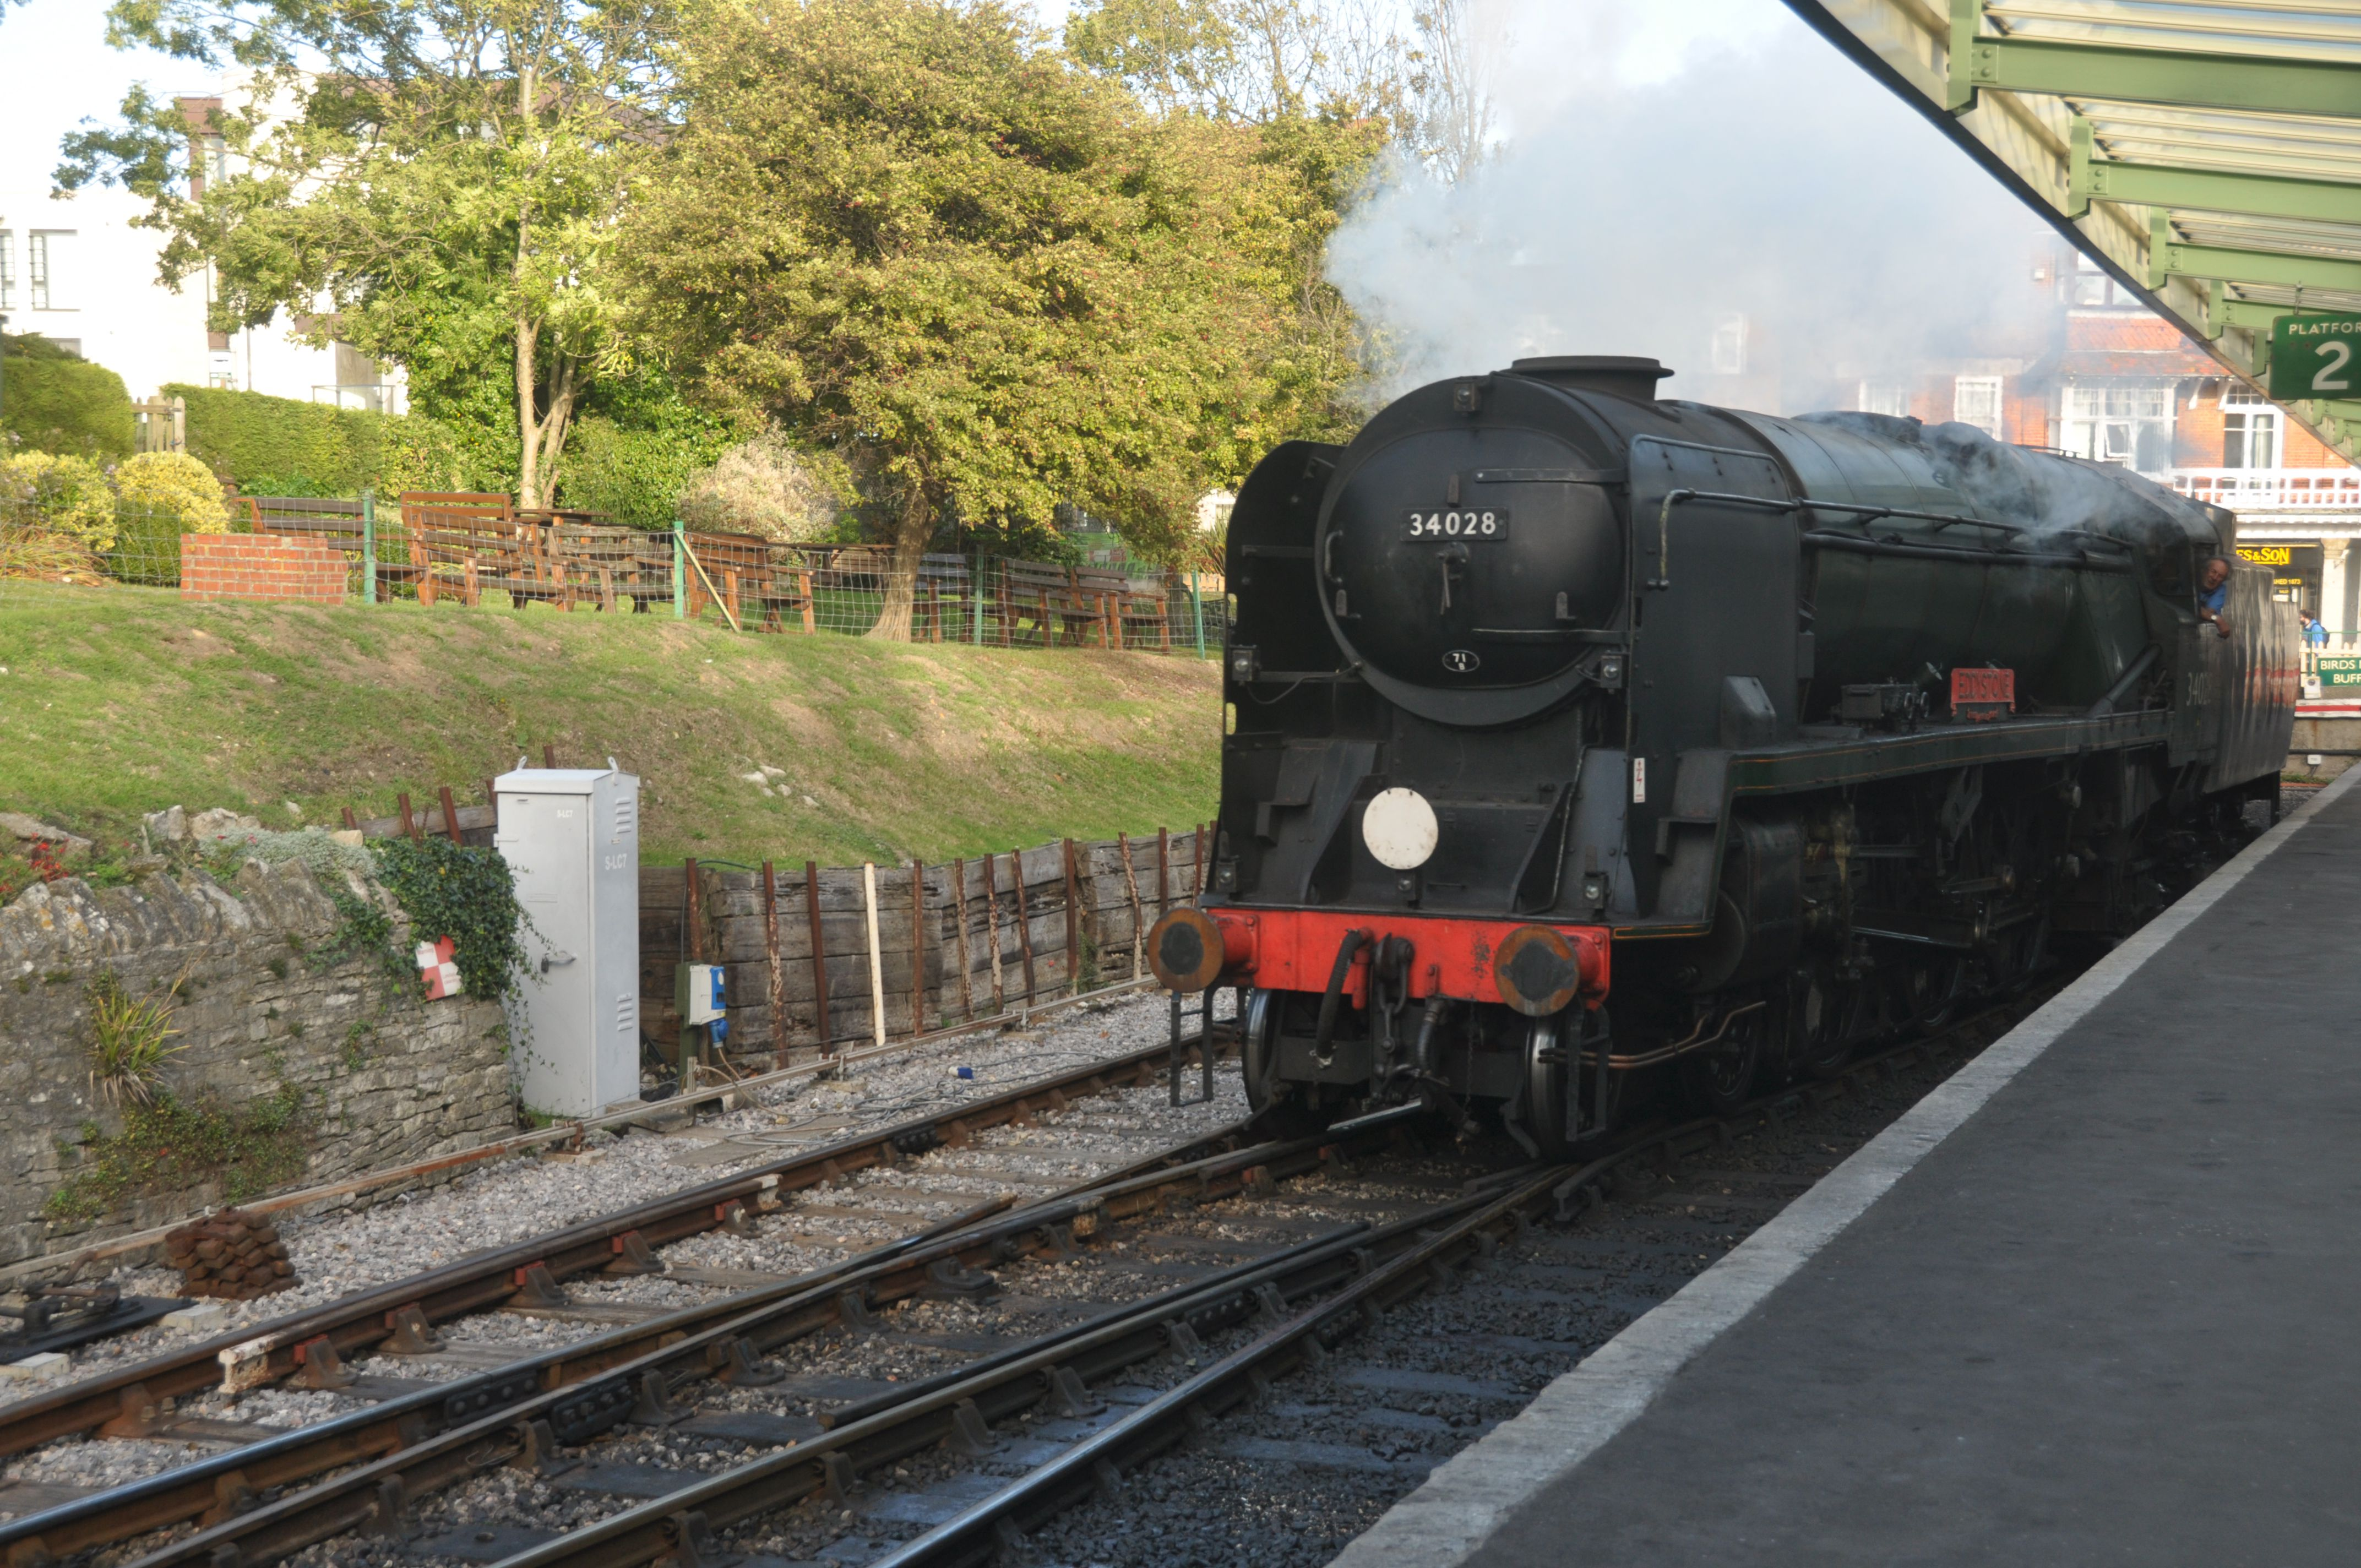 Steam Trains and Heritage Railways in England's West Country